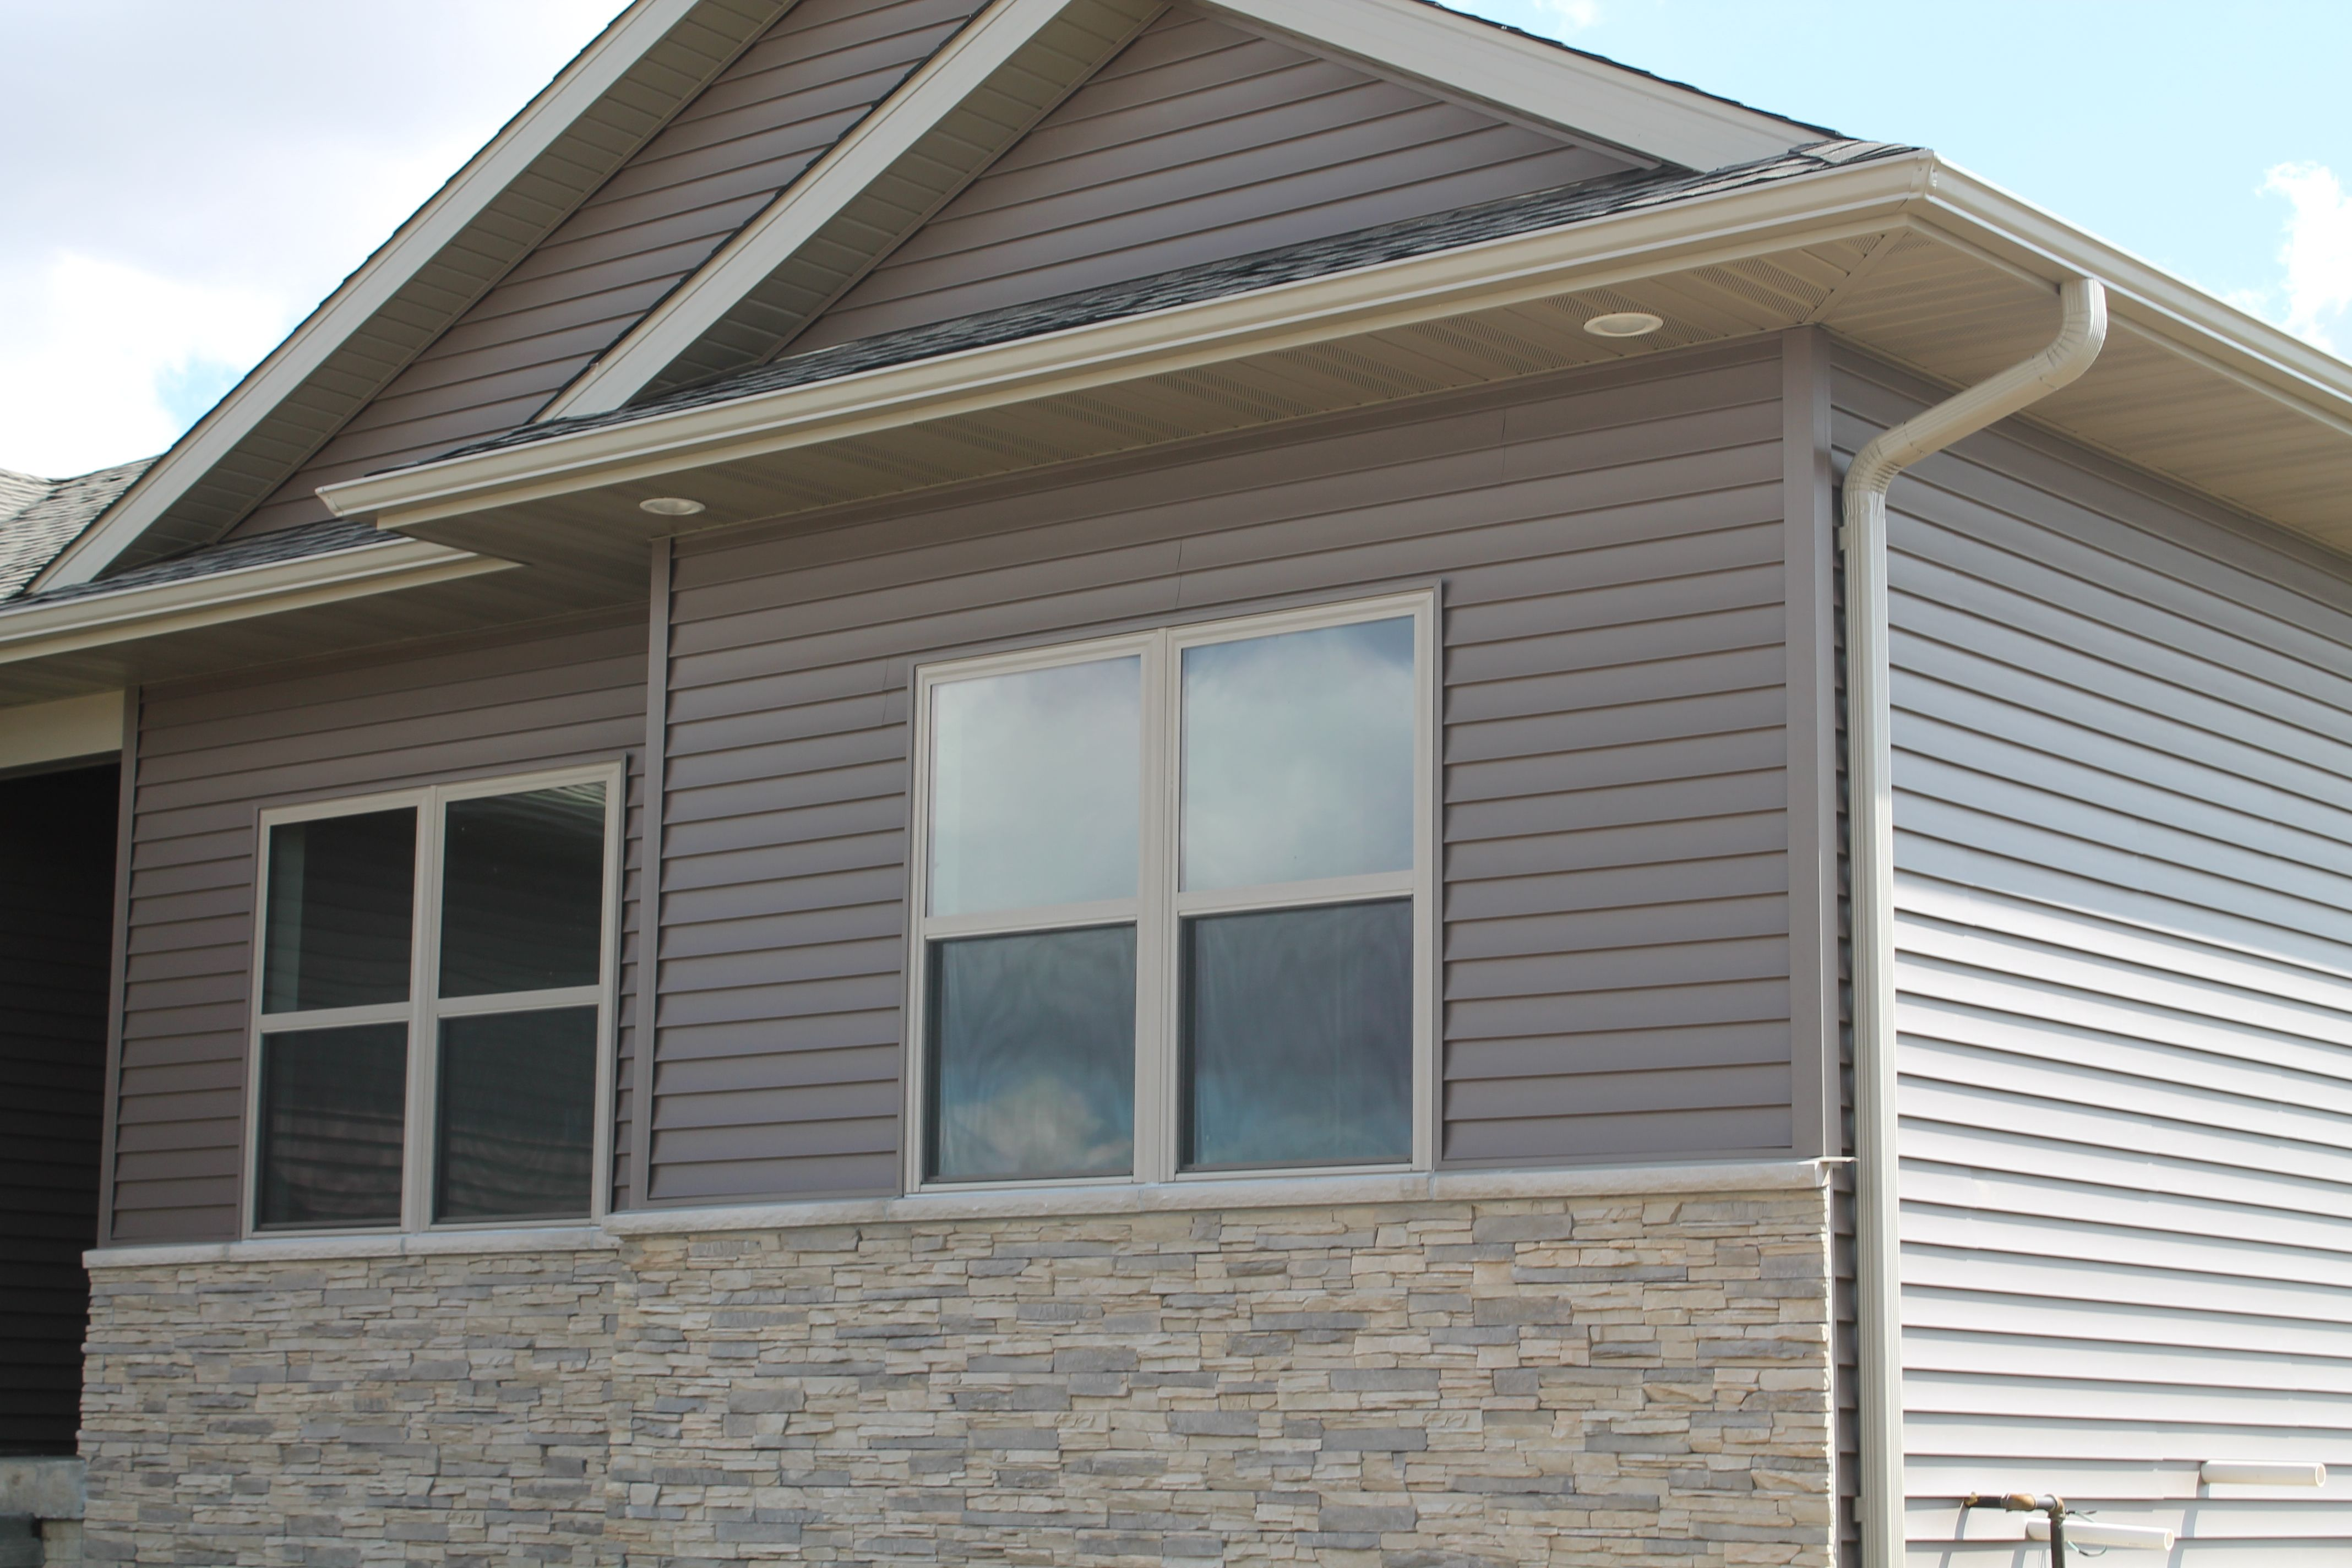 Truman certainteed siding color sable brown with for Certainteed siding